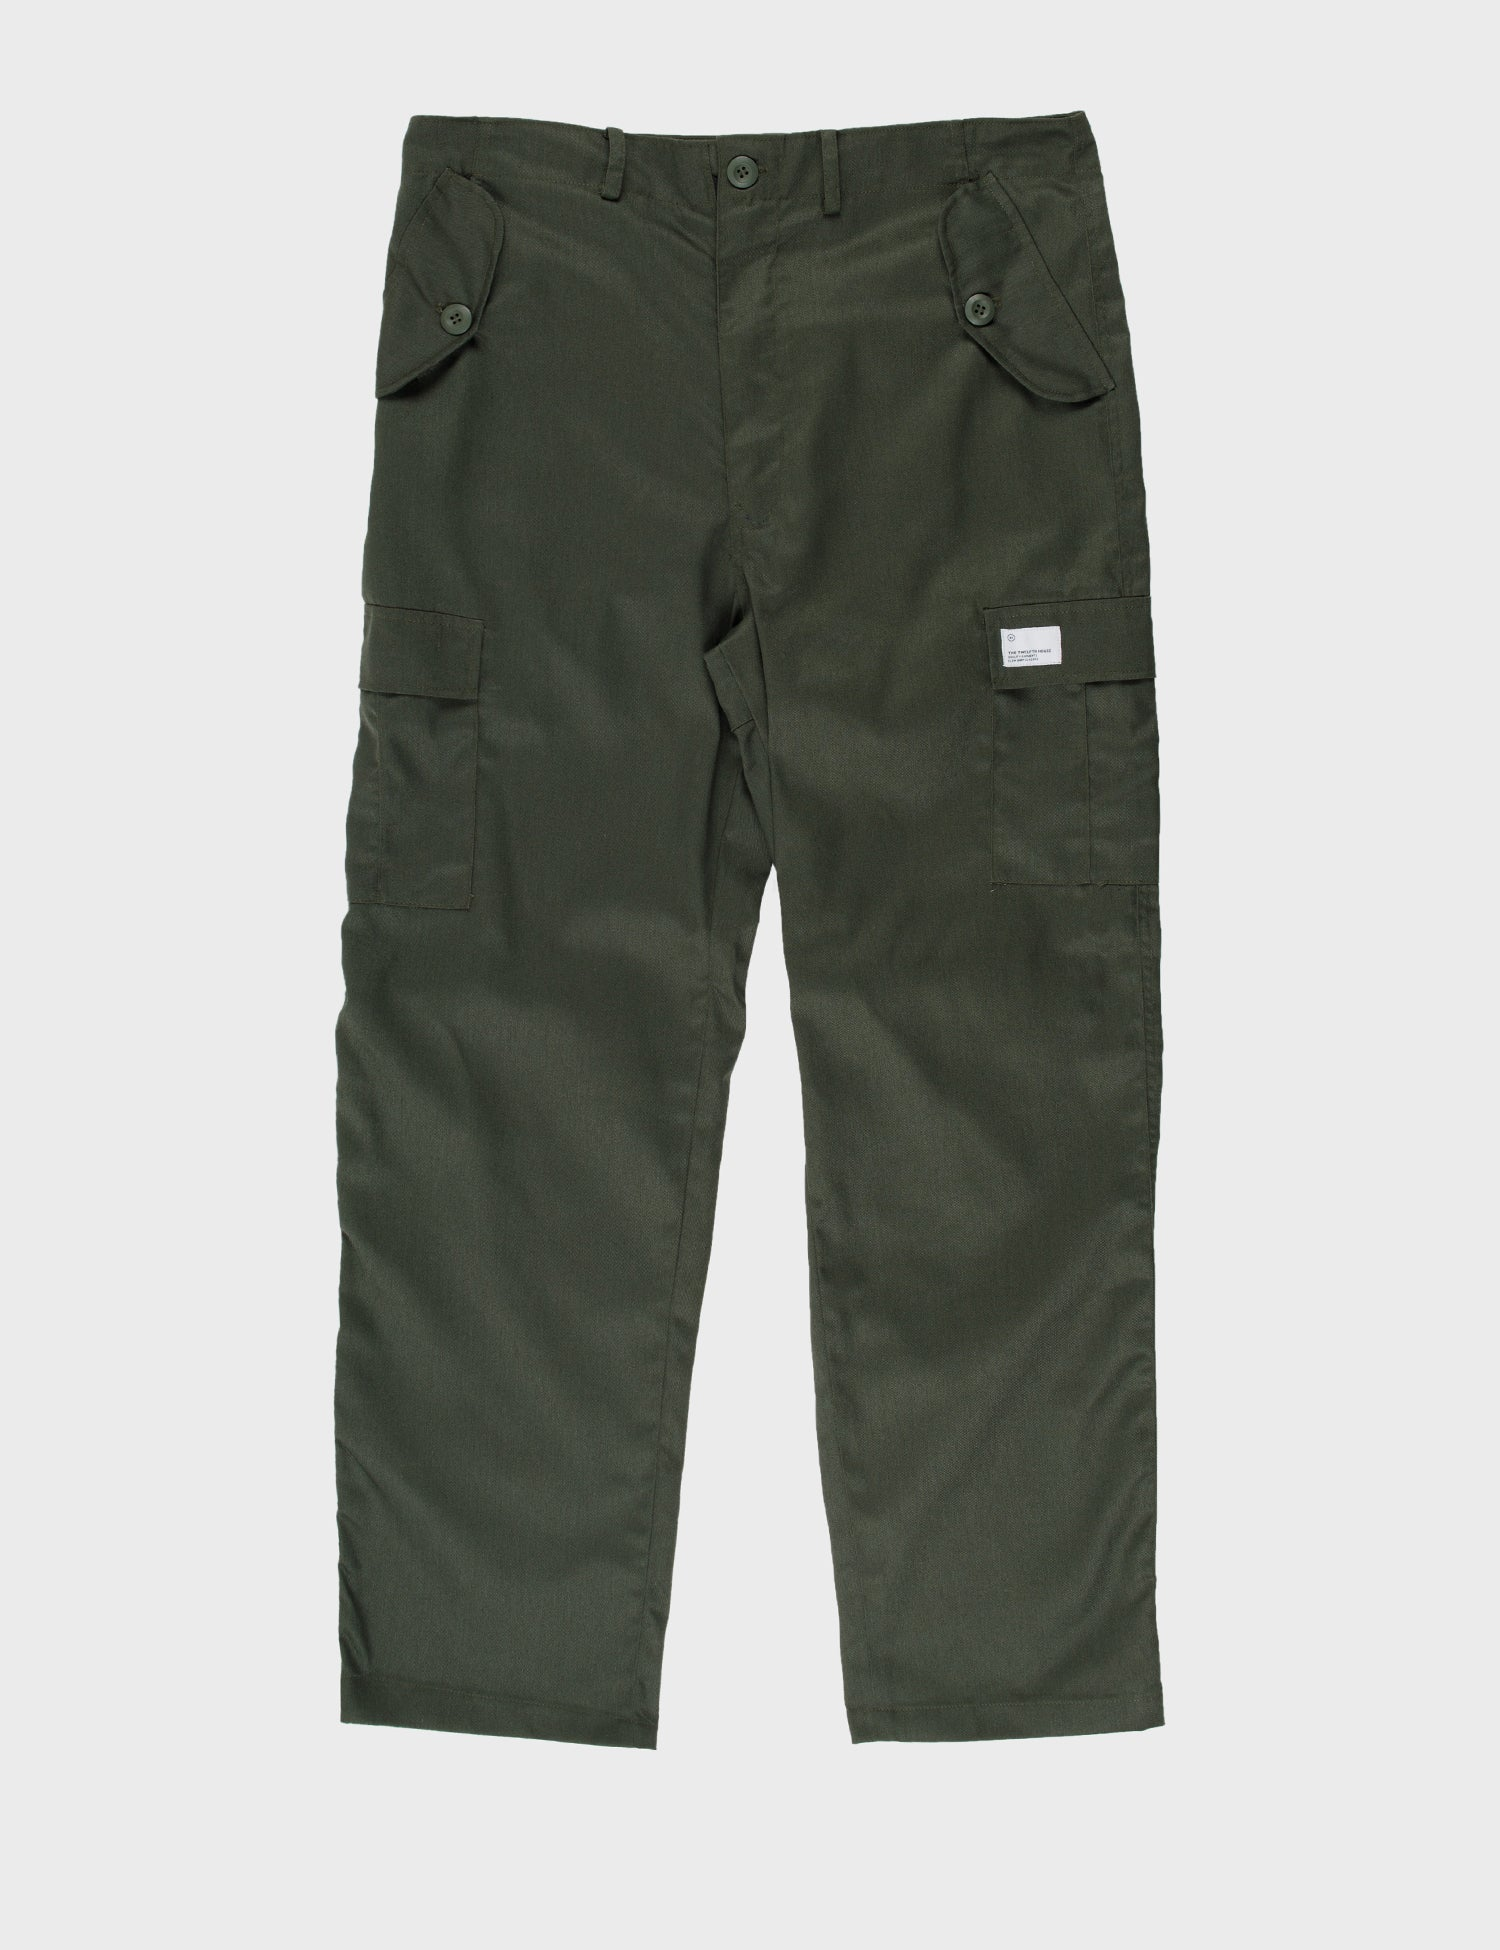 products/tth_2021_bottoms-cargo-olive-01.jpg